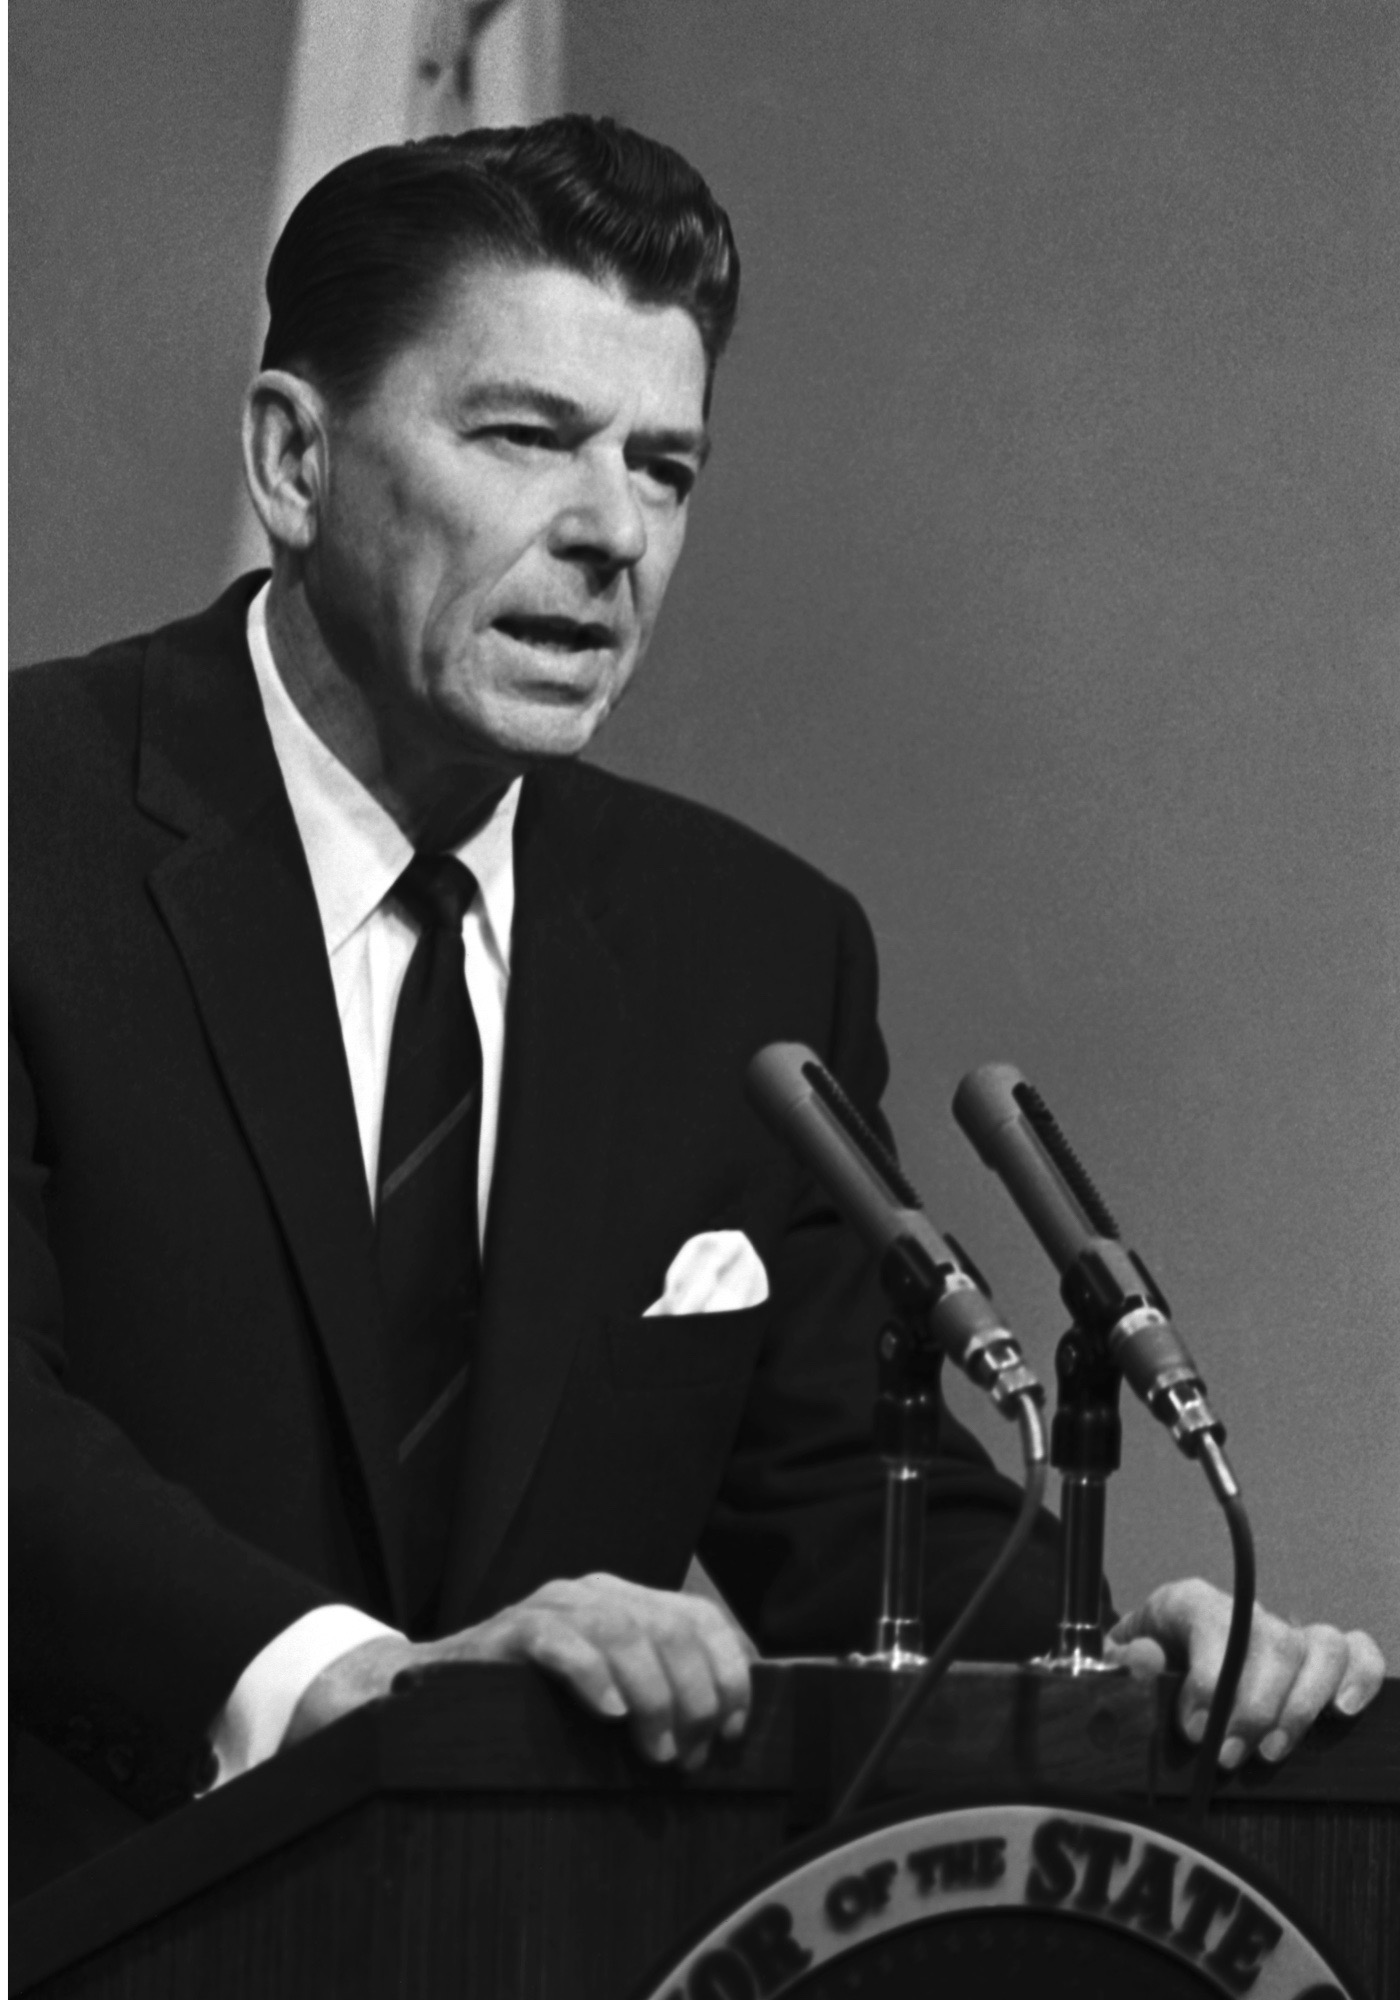 Ronald Reagan takes the oath of office as California governor, 1967. (Photo by Bettmann/Getty Images)